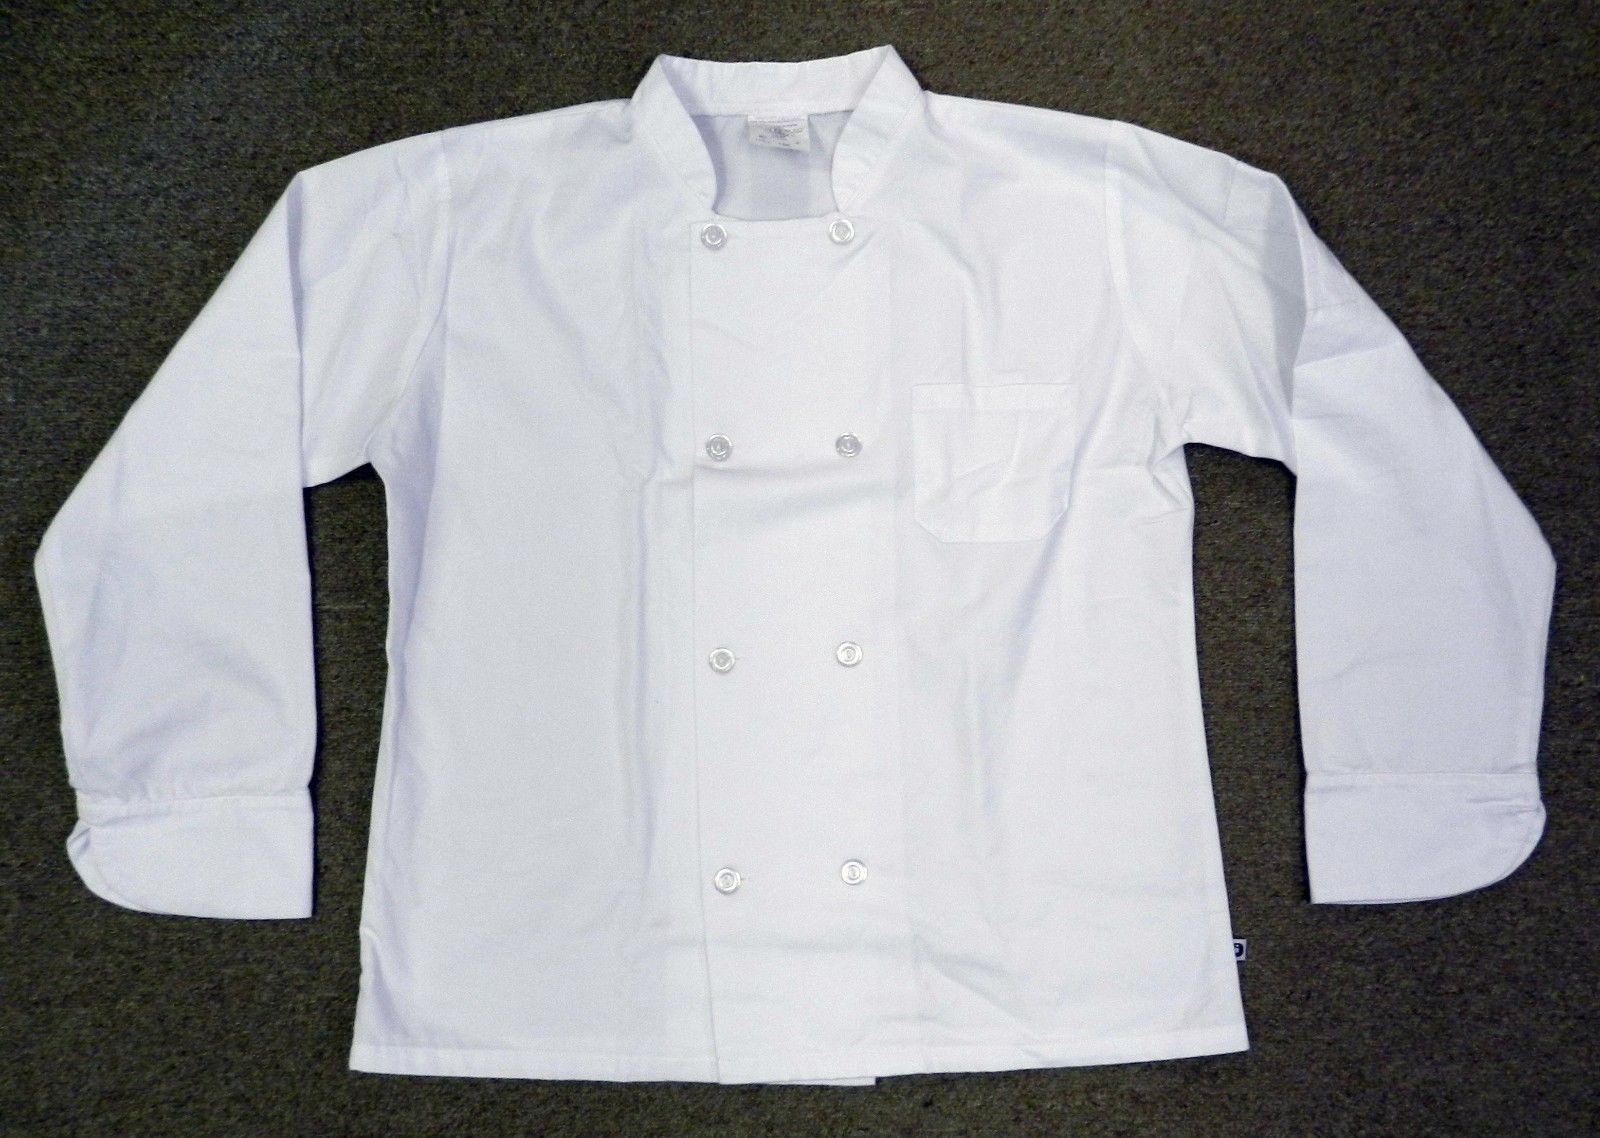 Chef Coat Small Double Breasted White Uniform Jacket Unisex Quality LAB0191 New